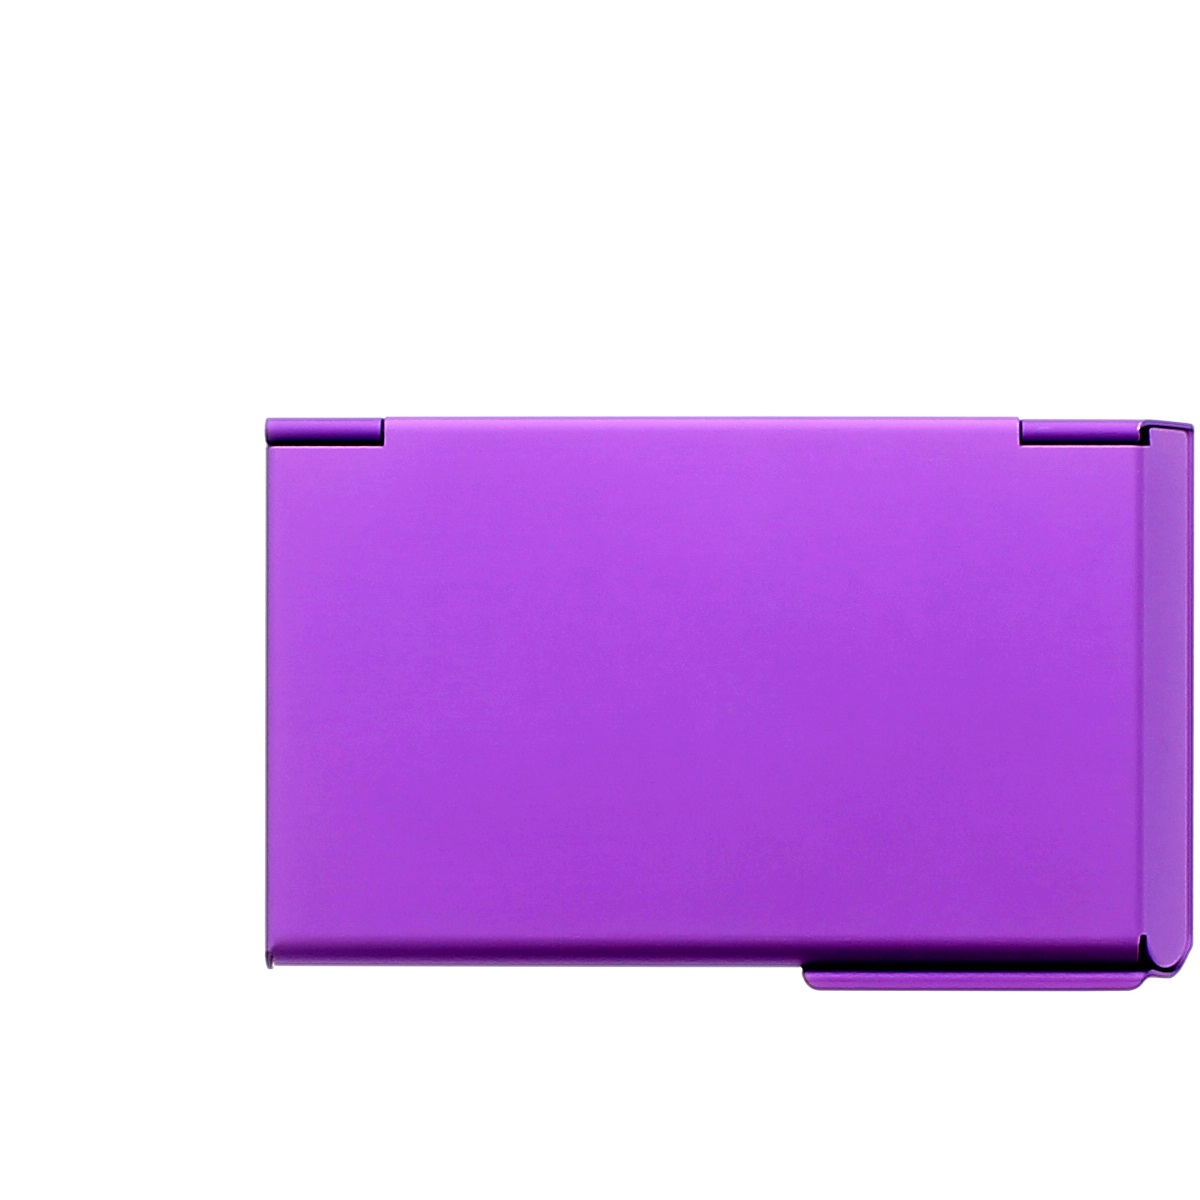 OGON Aluminum Business card holder One Touch - Purple